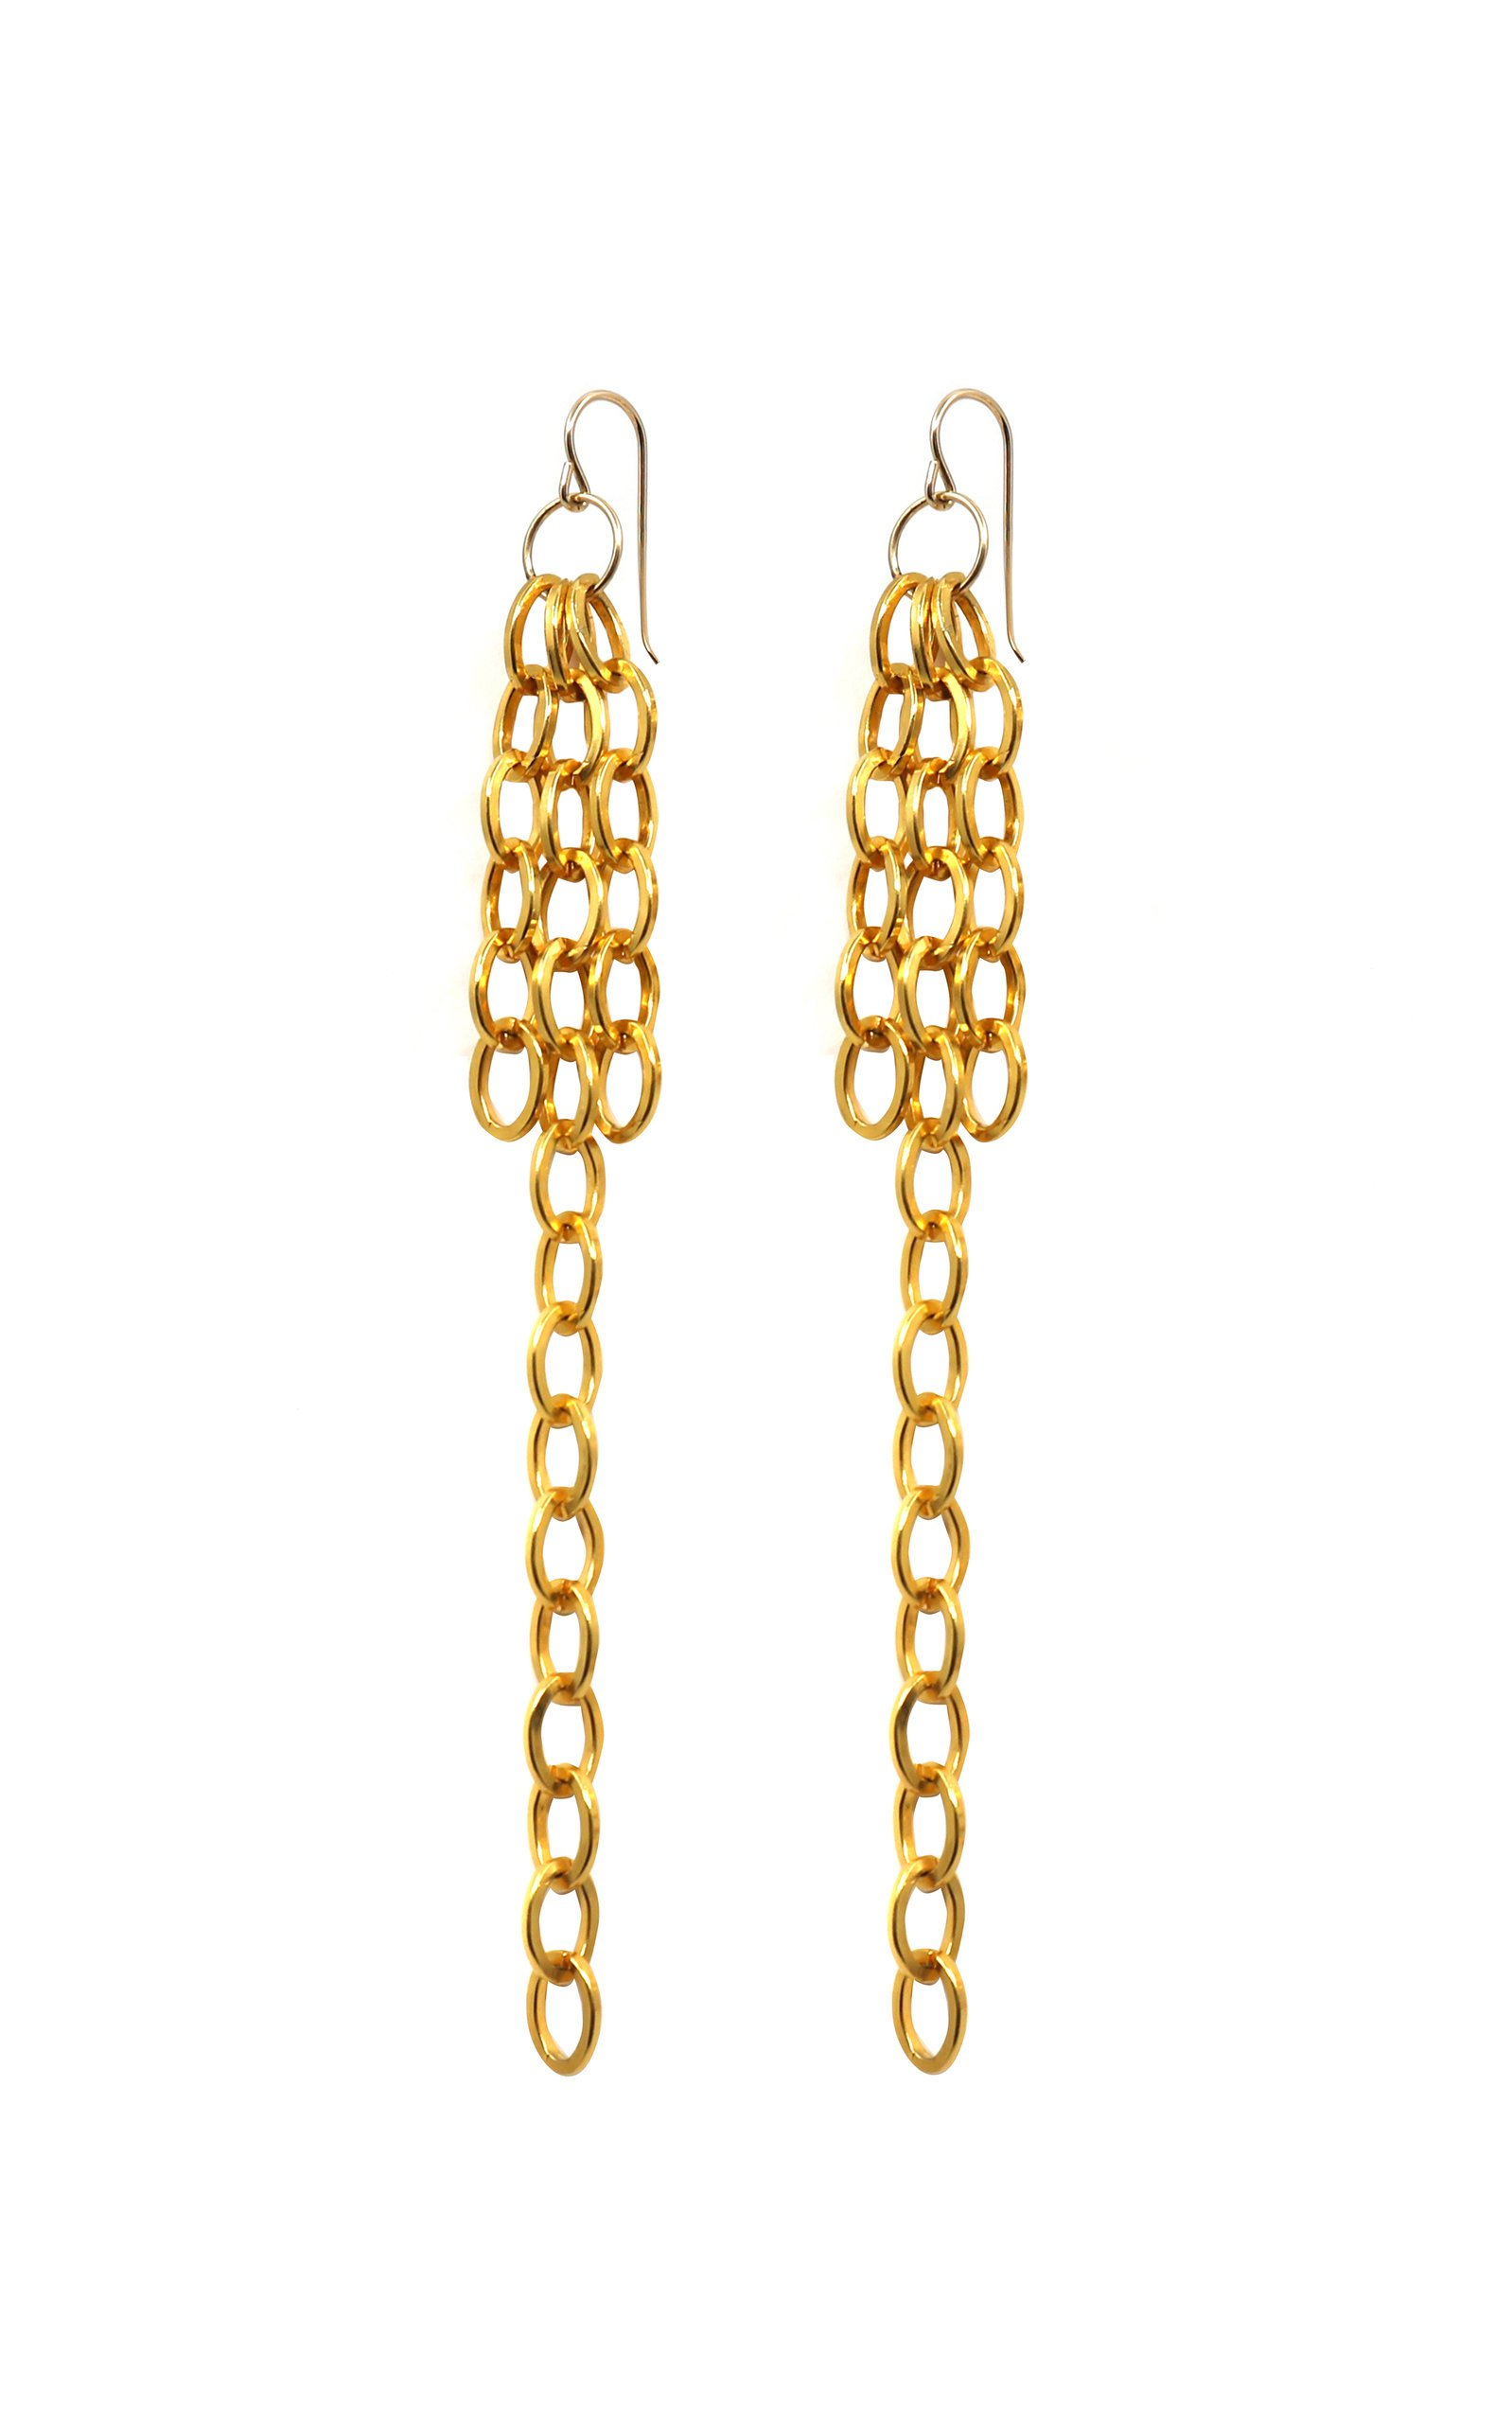 Petite Grand x Bondi Born Roscoe Chain Earrings